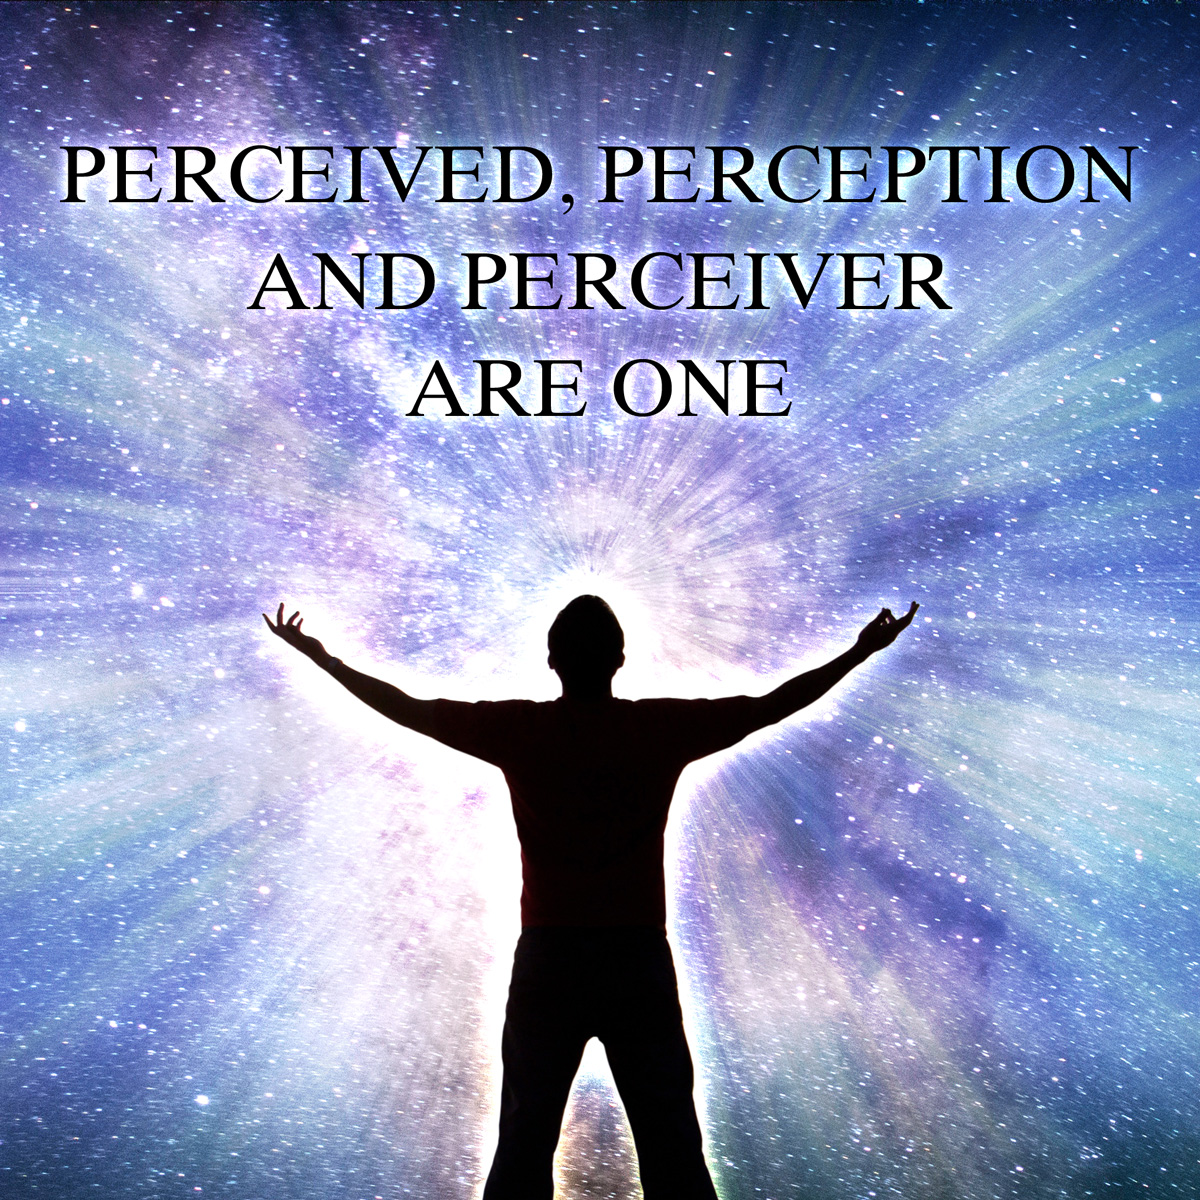 Perceived, Perception and Perceiver